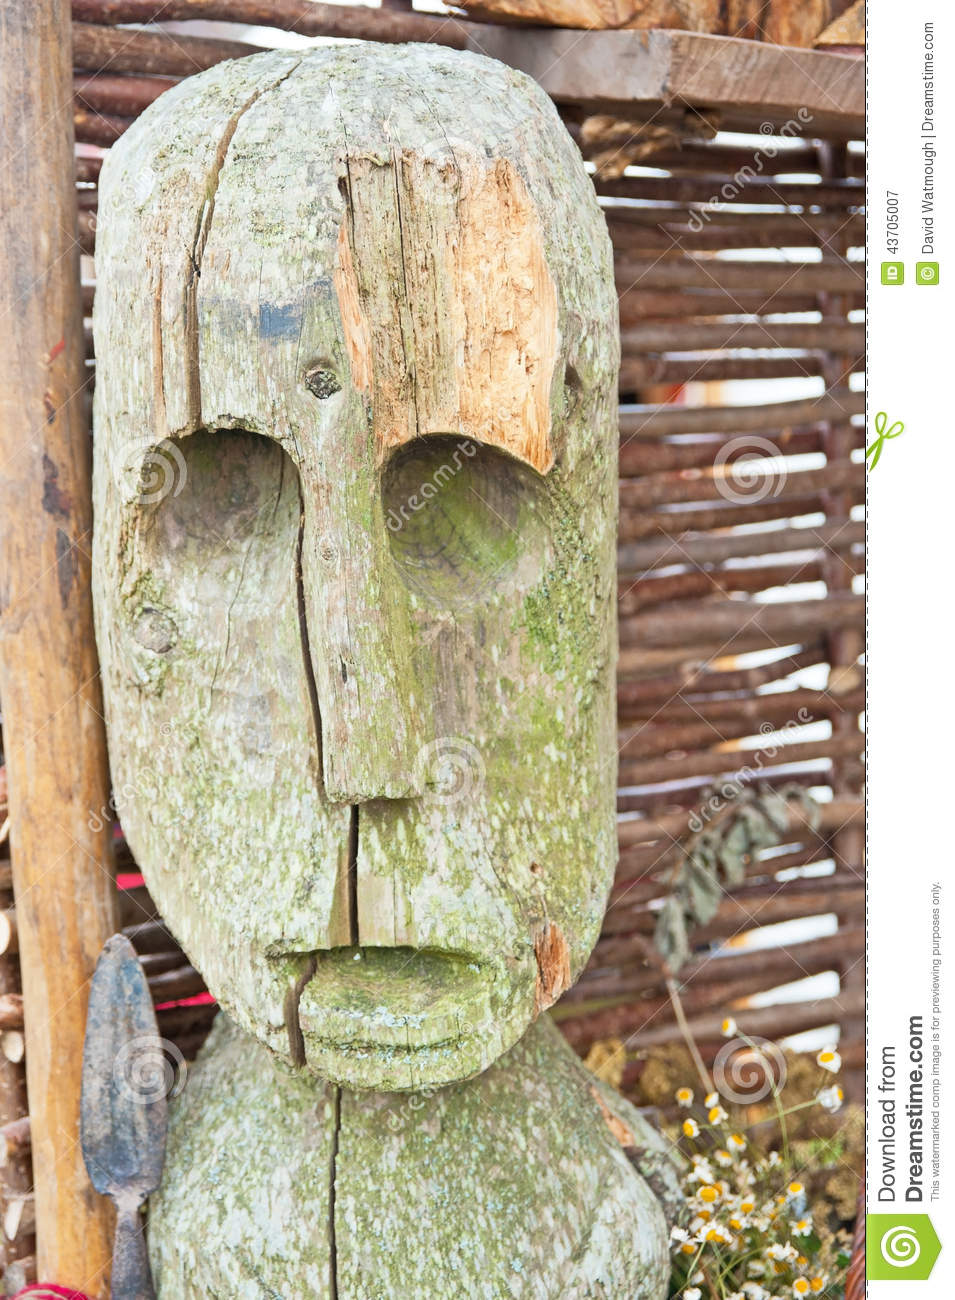 Wooden Statue Of Celtic Period Stock Image - Image of history